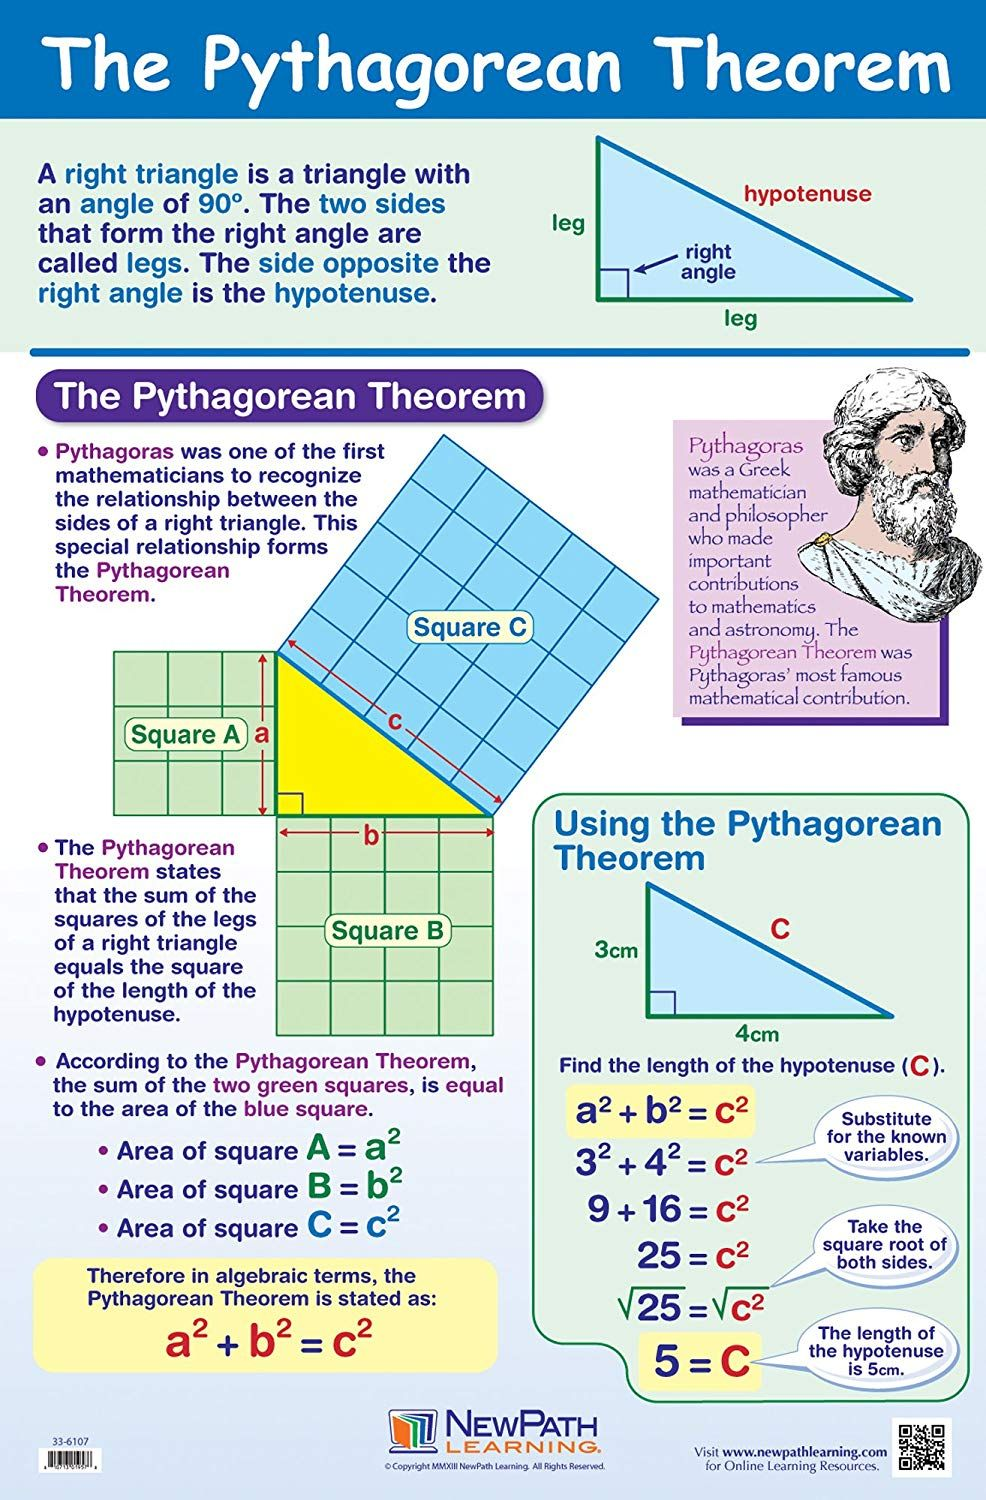 The Pythagorean Theorem was created by Pythagoras, a Greek